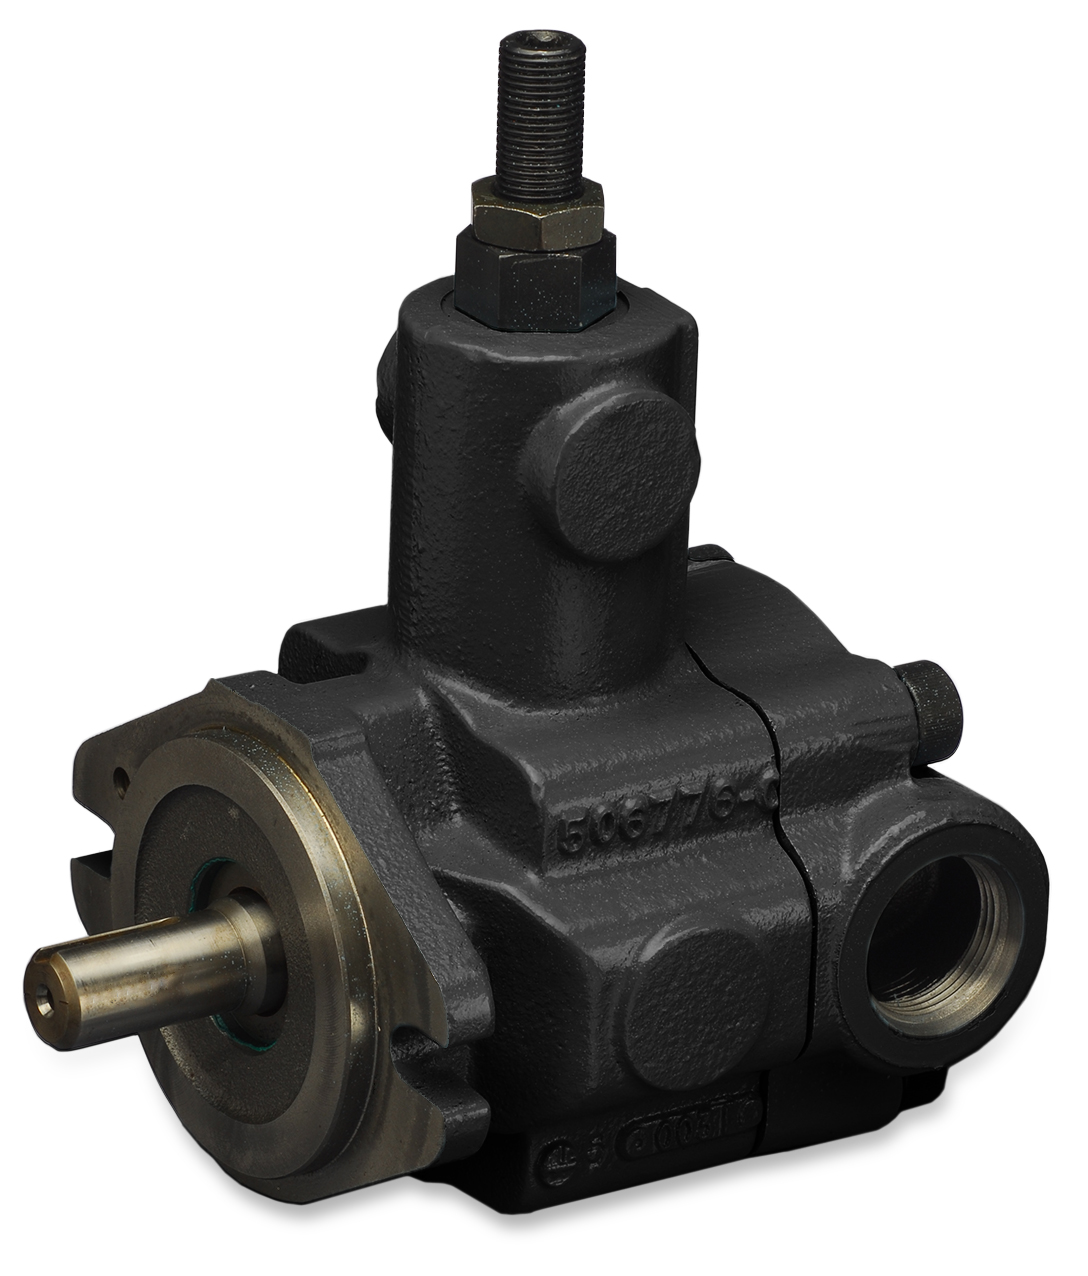 PVR6 hydraulic pump product; white background